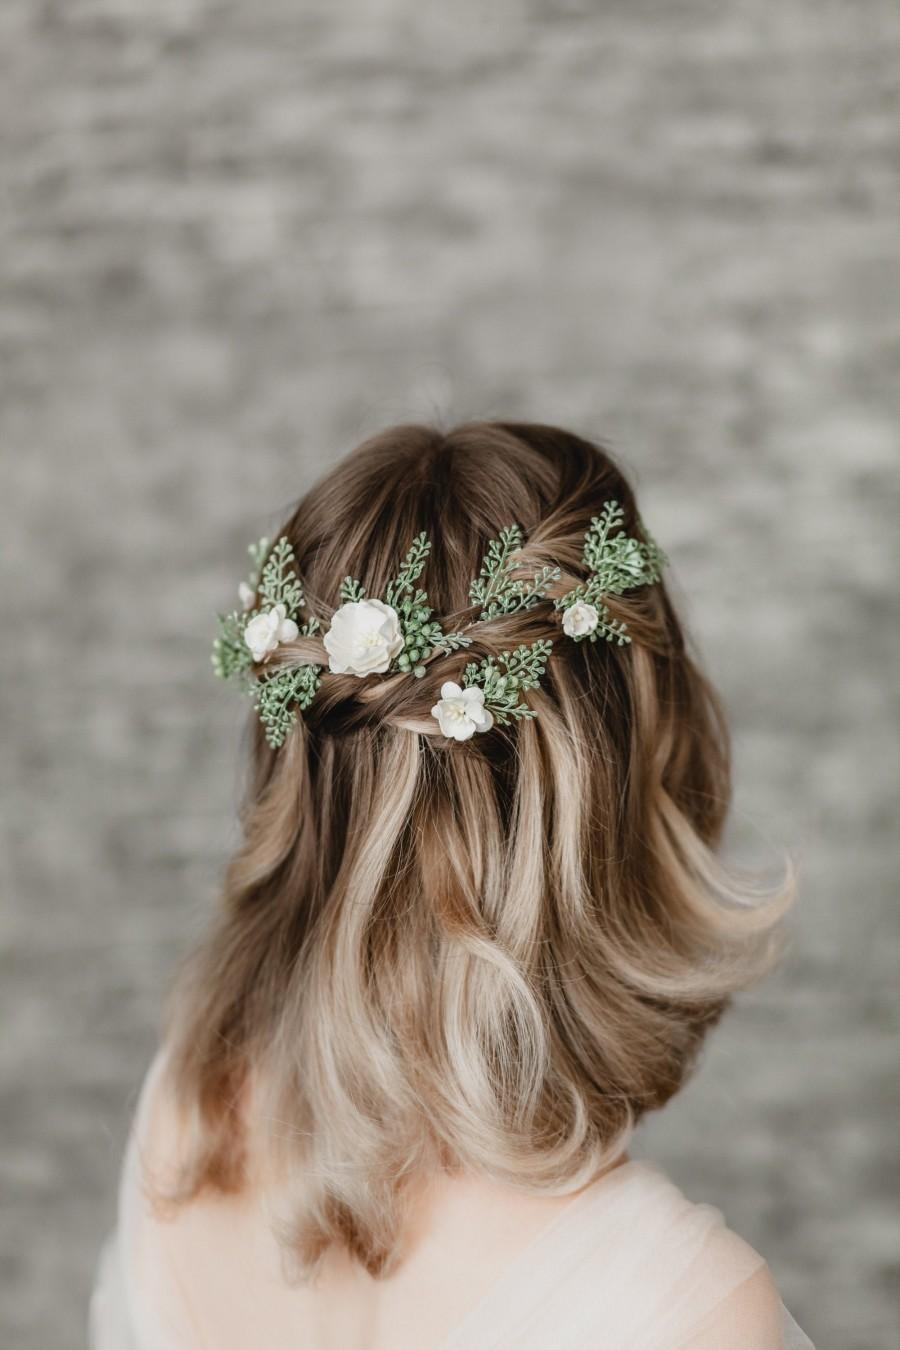 Mariage - White Blossom Flower Hair Pins Set of 10, Woodland Wedding Hair Piece, Sage Greenery Bobby Pin Hair, Floral Leaf Bridal Hair, Boho Headpiece